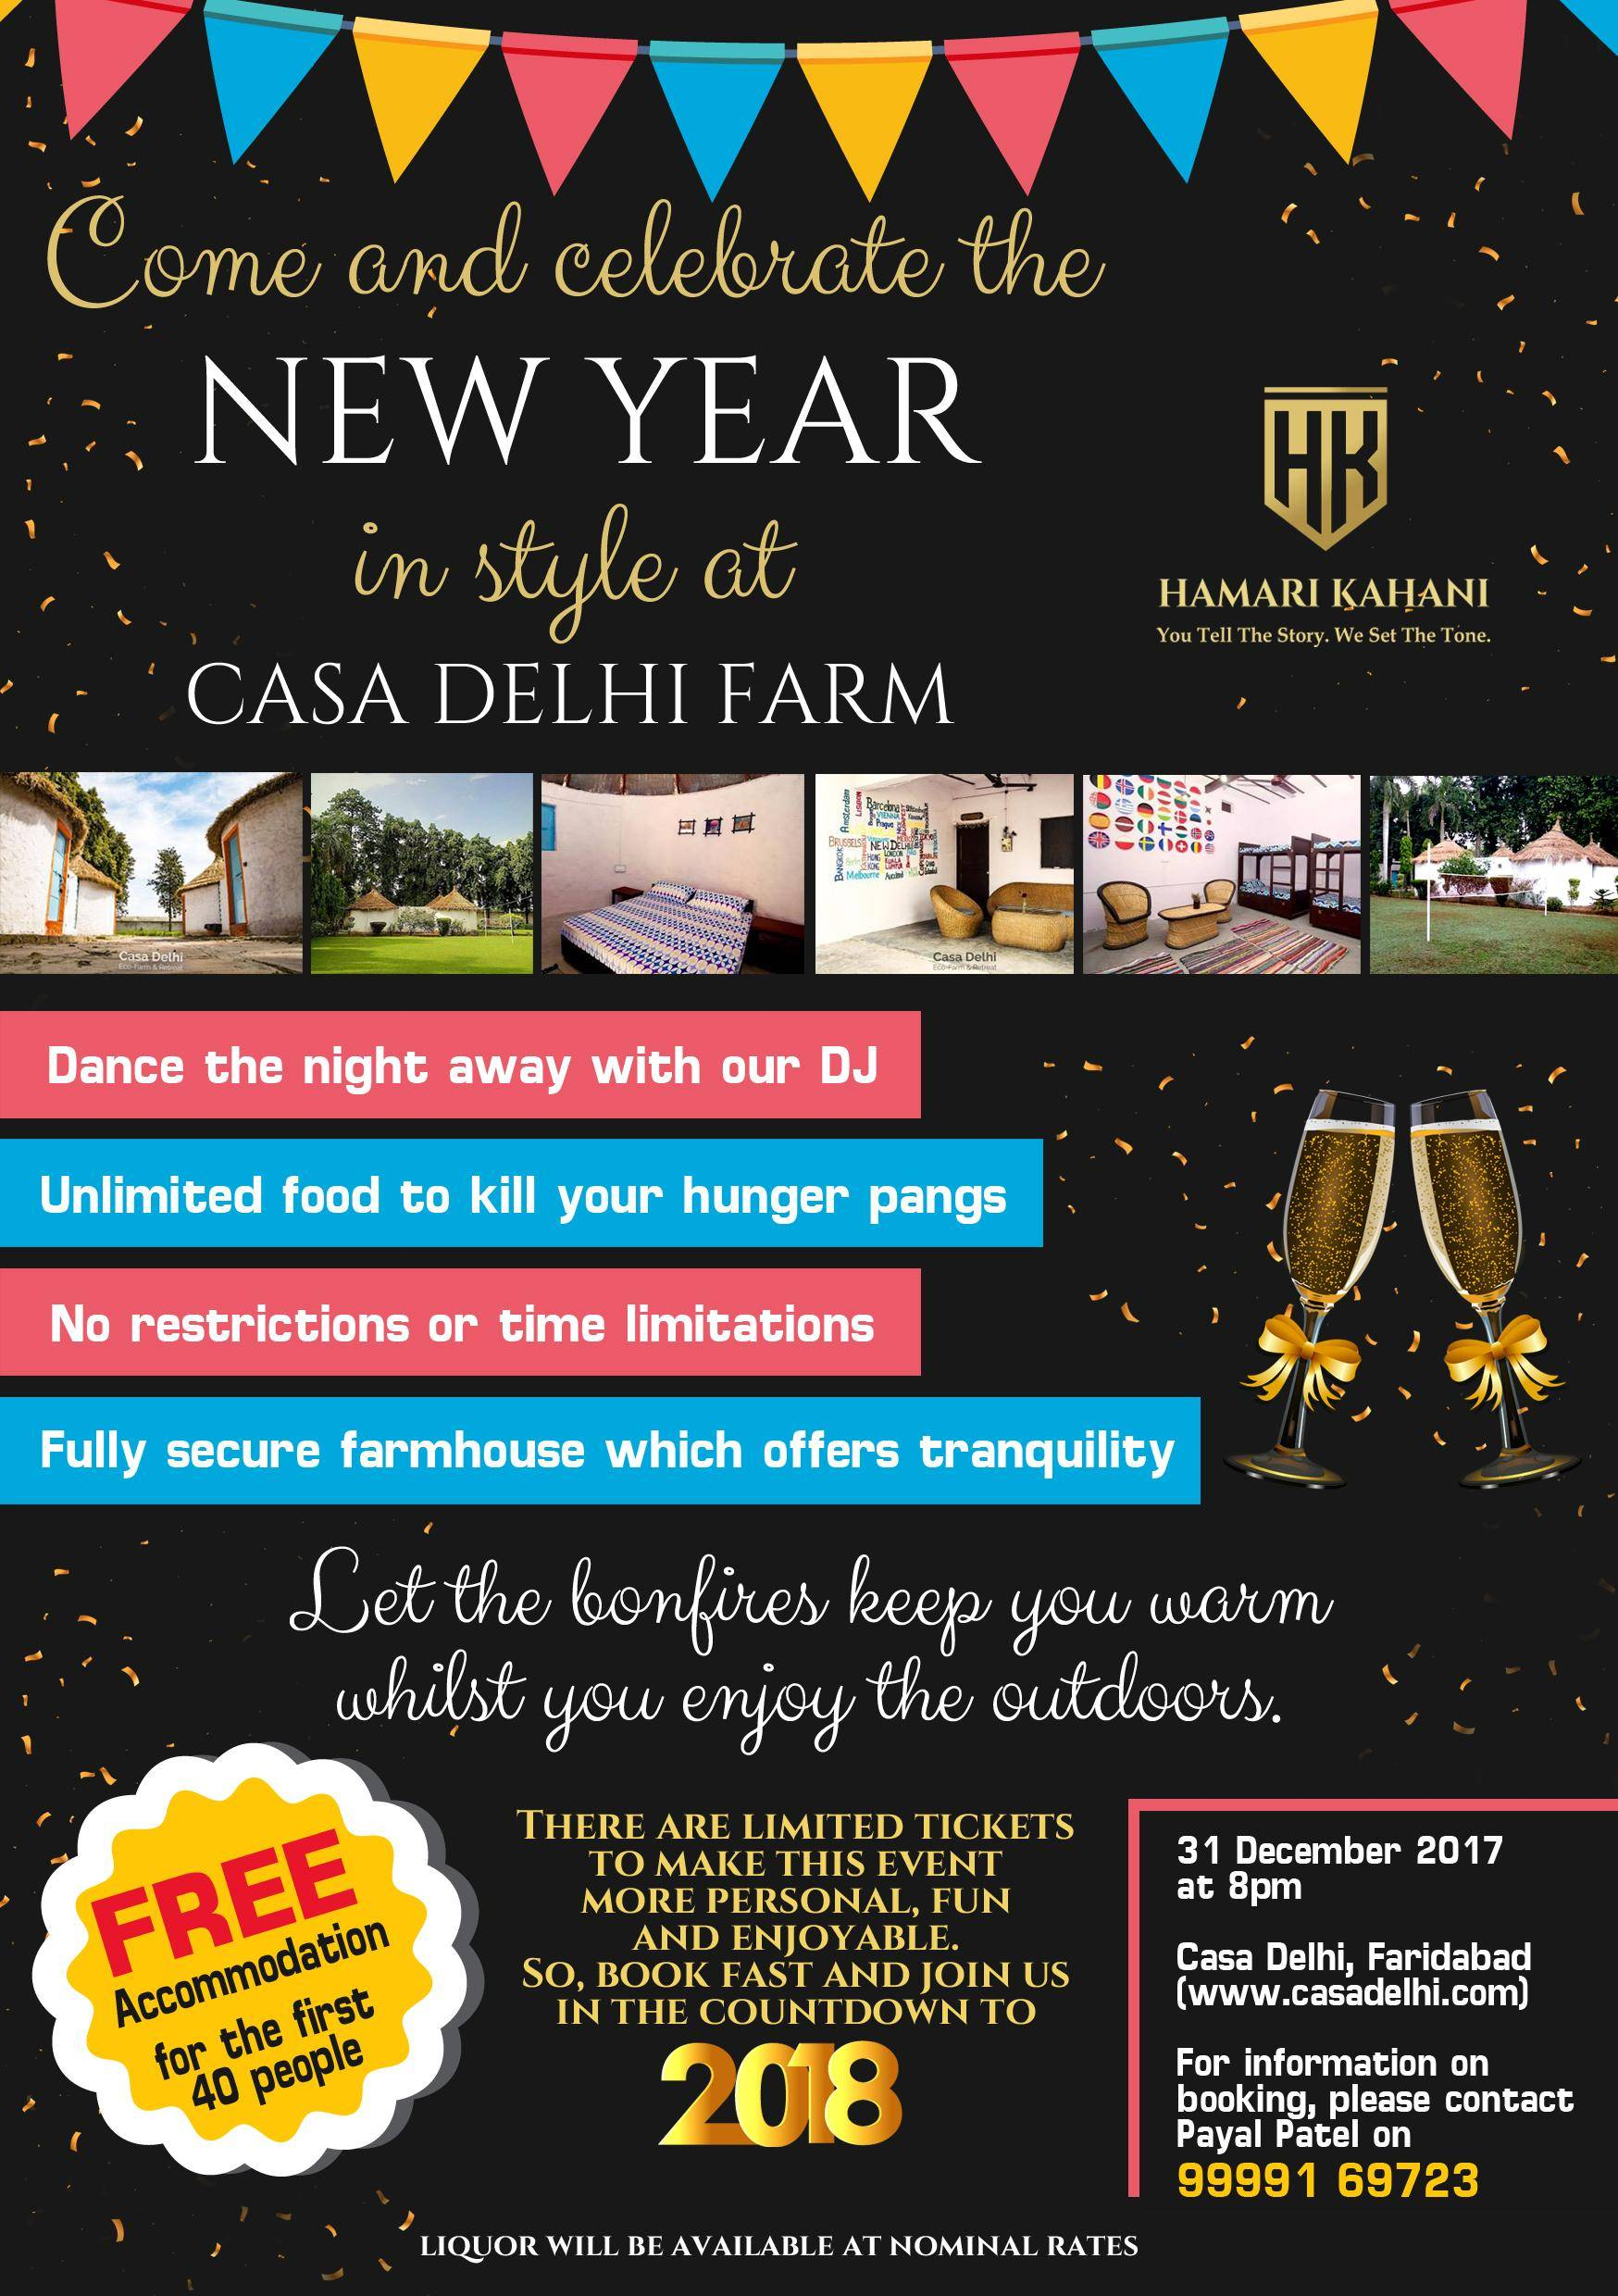 New Year's Eve Farmhouse Party